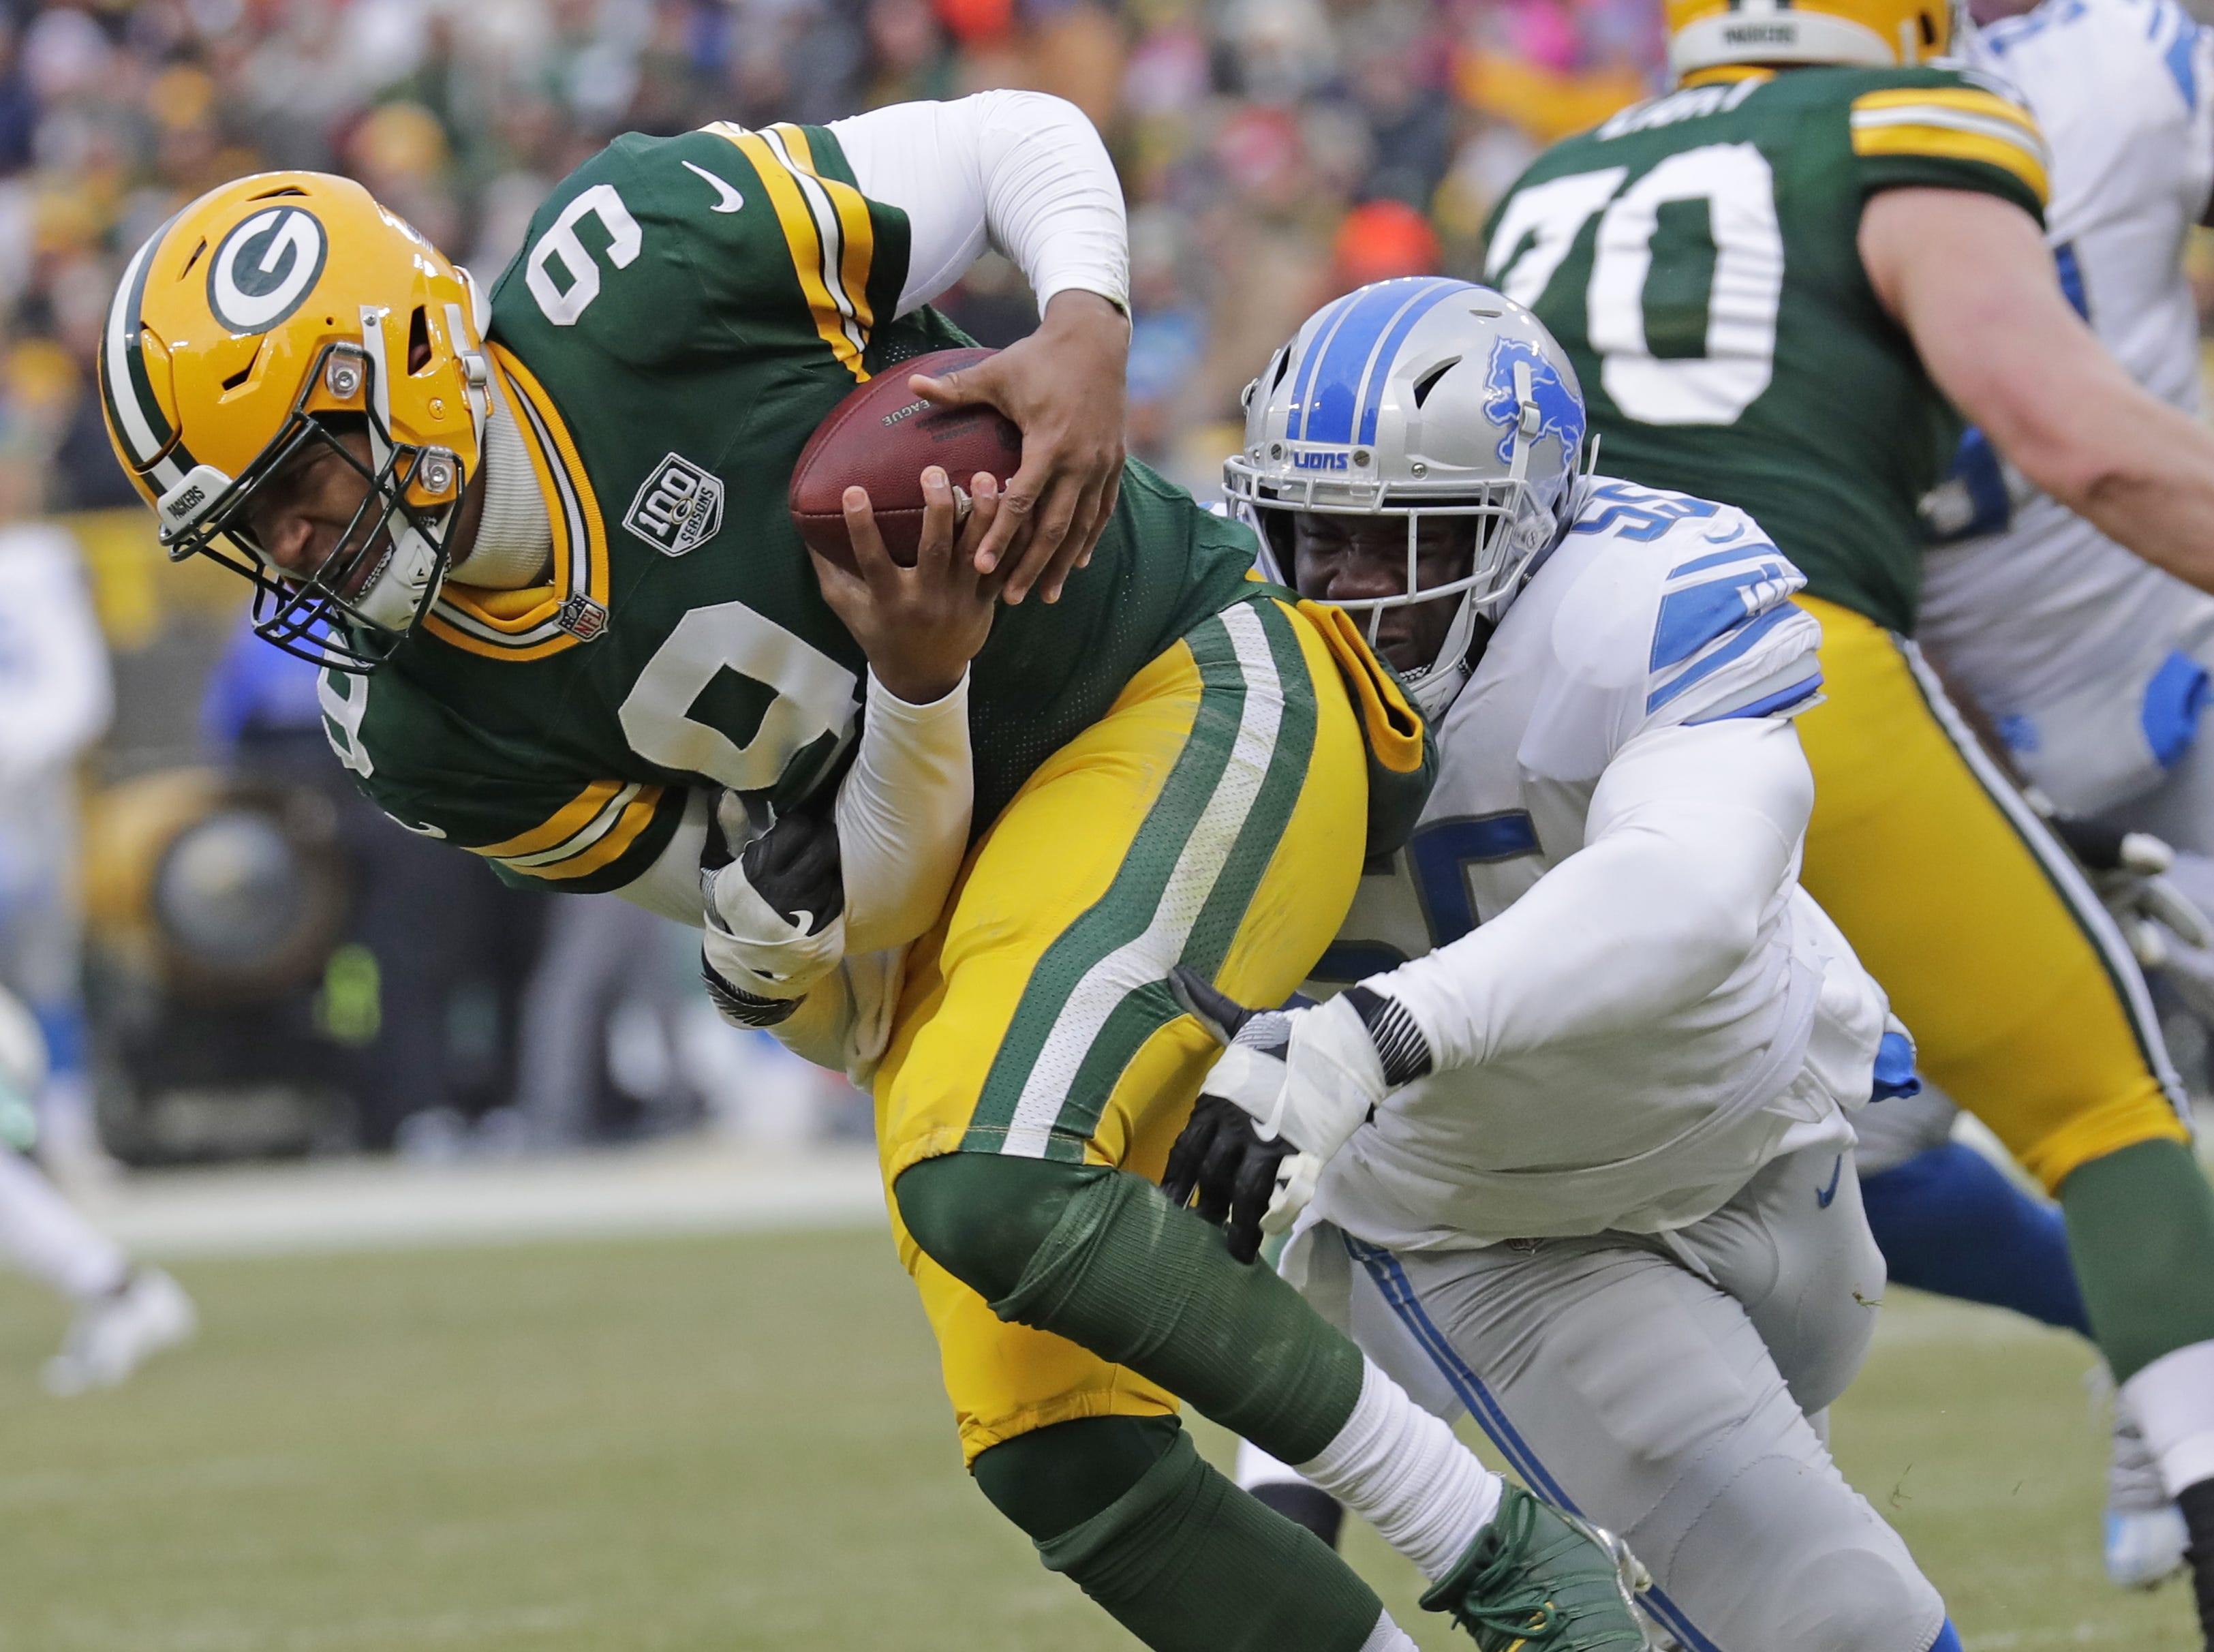 Green Bay Packers quarterback DeShone Kizer (9) gets scrambles away from Detroit Lions defensive end Eric Lee (55) in the fourth quarter Sunday, December 30, 2018, at Lambeau Field in Green Bay, Wis.  Dan Powers/USA TODAY NETWORK-Wisconsin